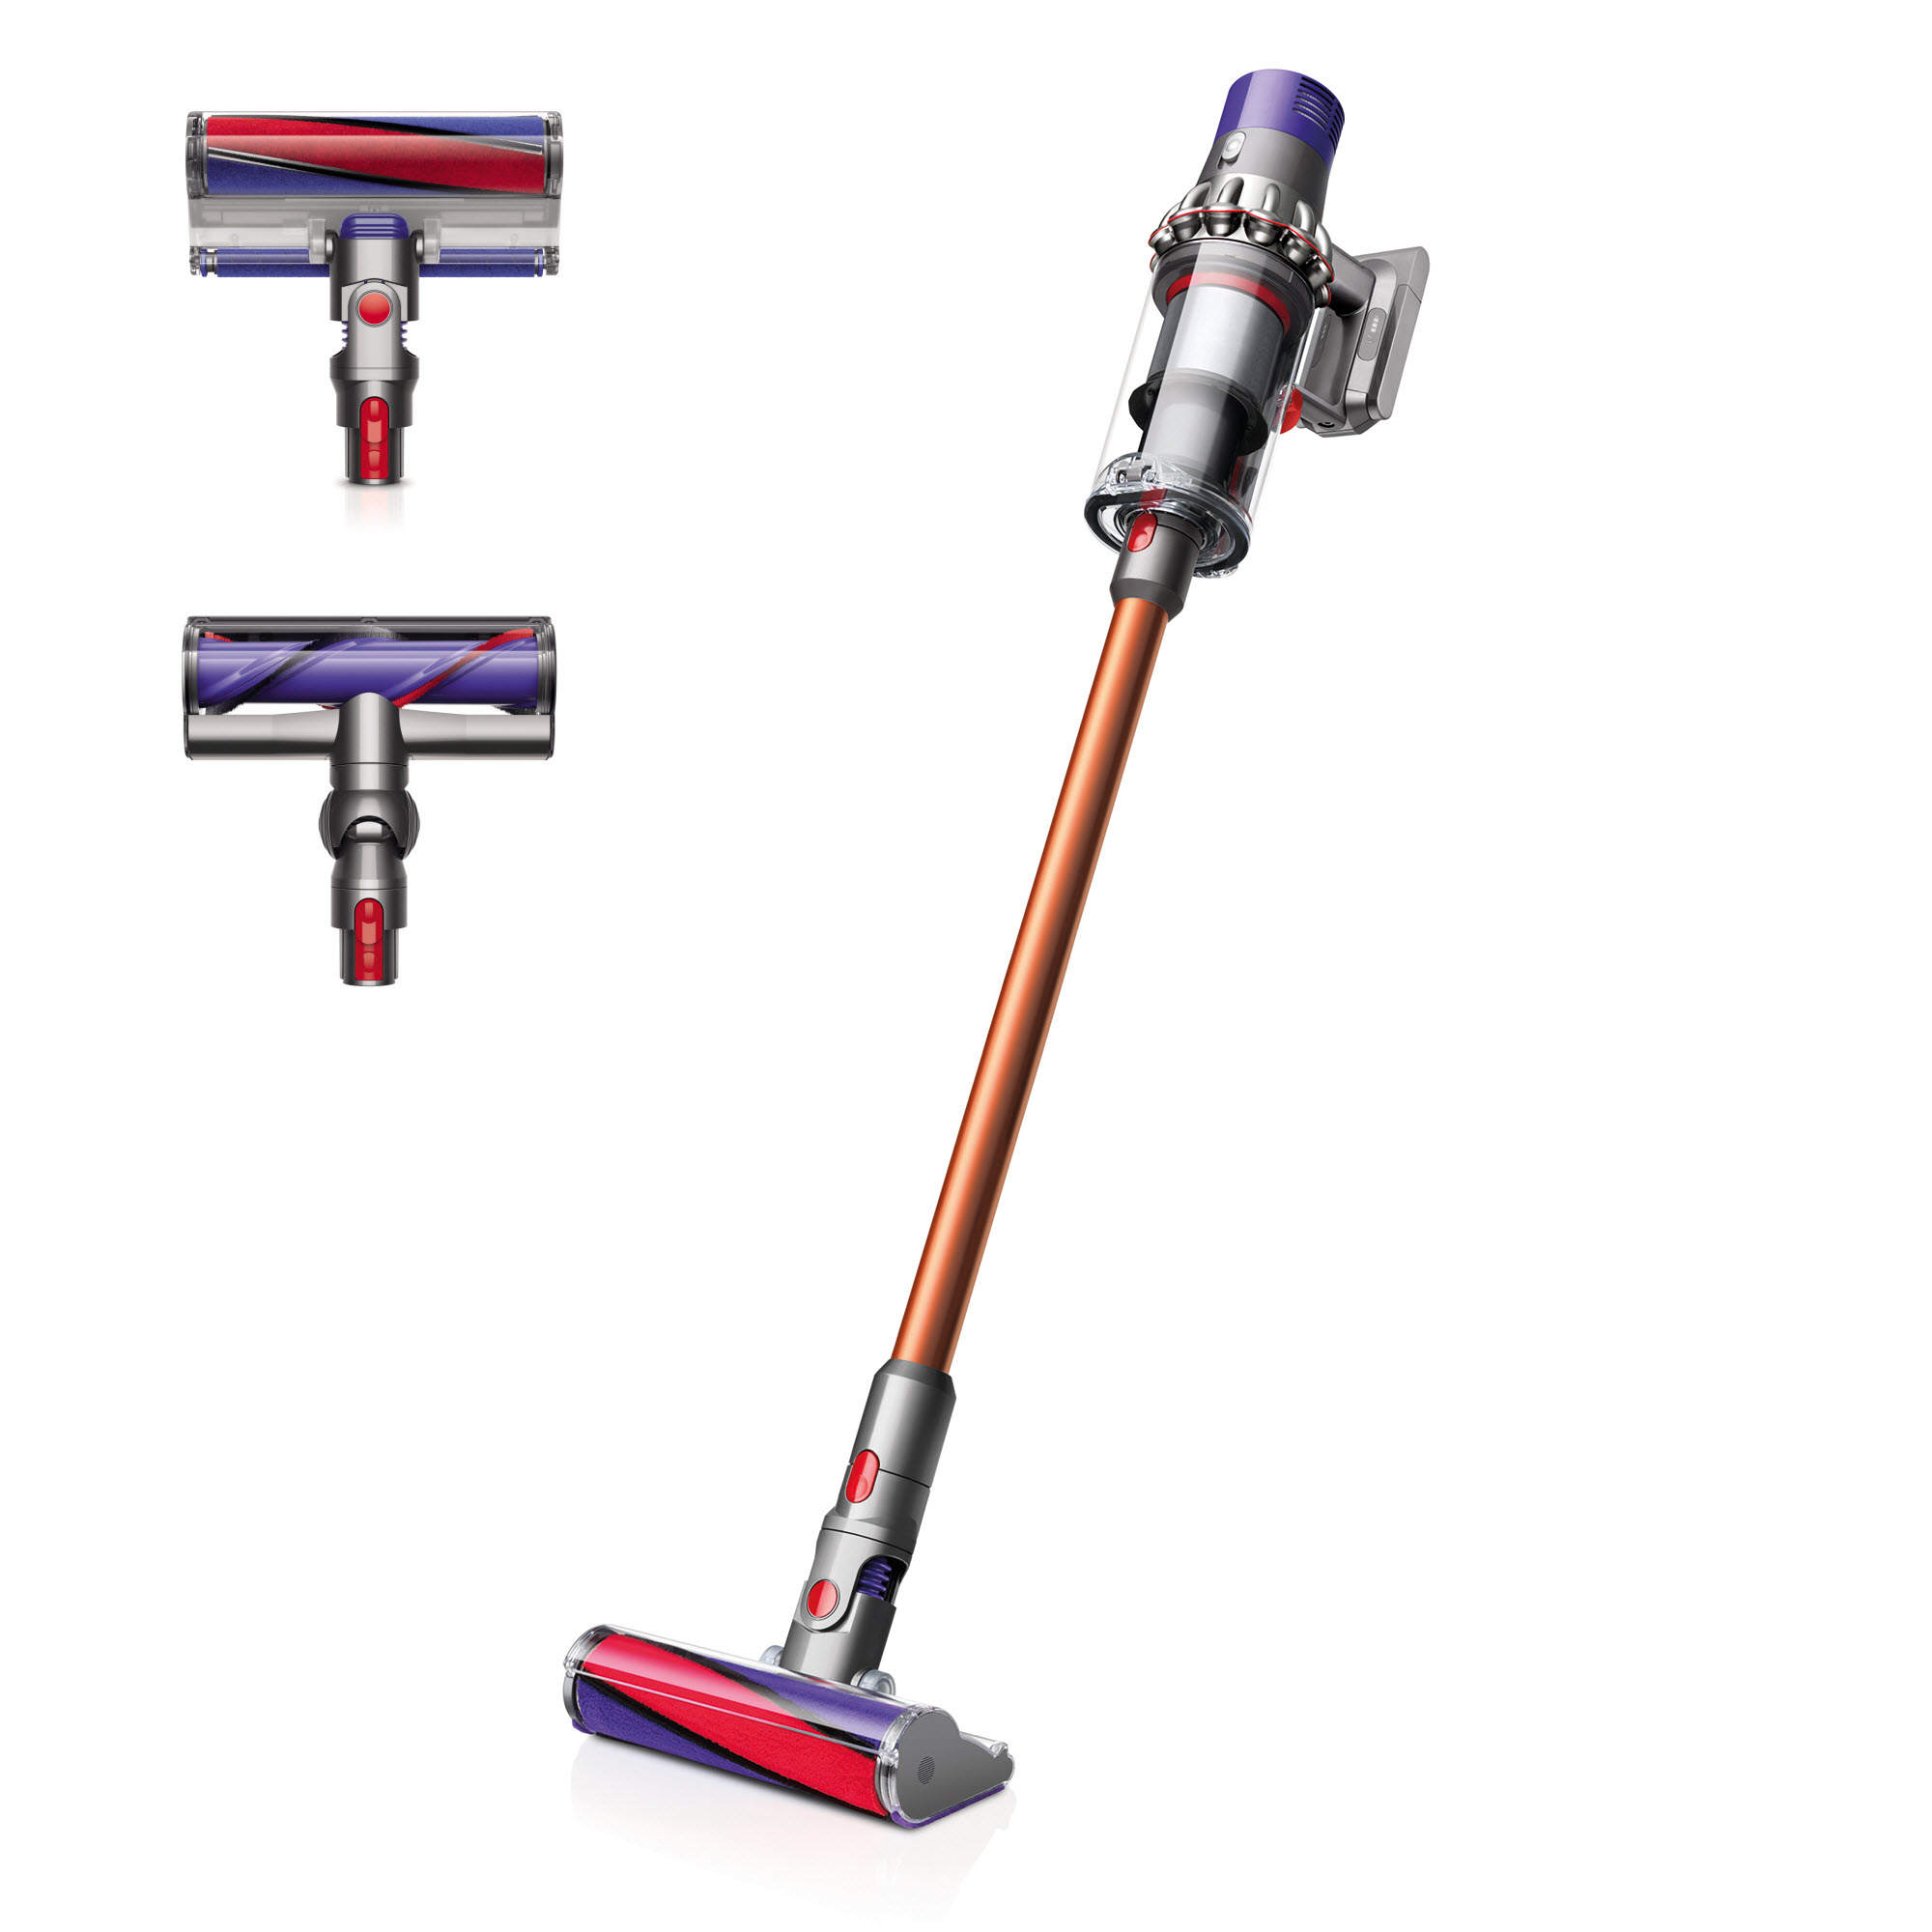 Dyson Cyclone V10 Absolute Lightweight Cordless Stick